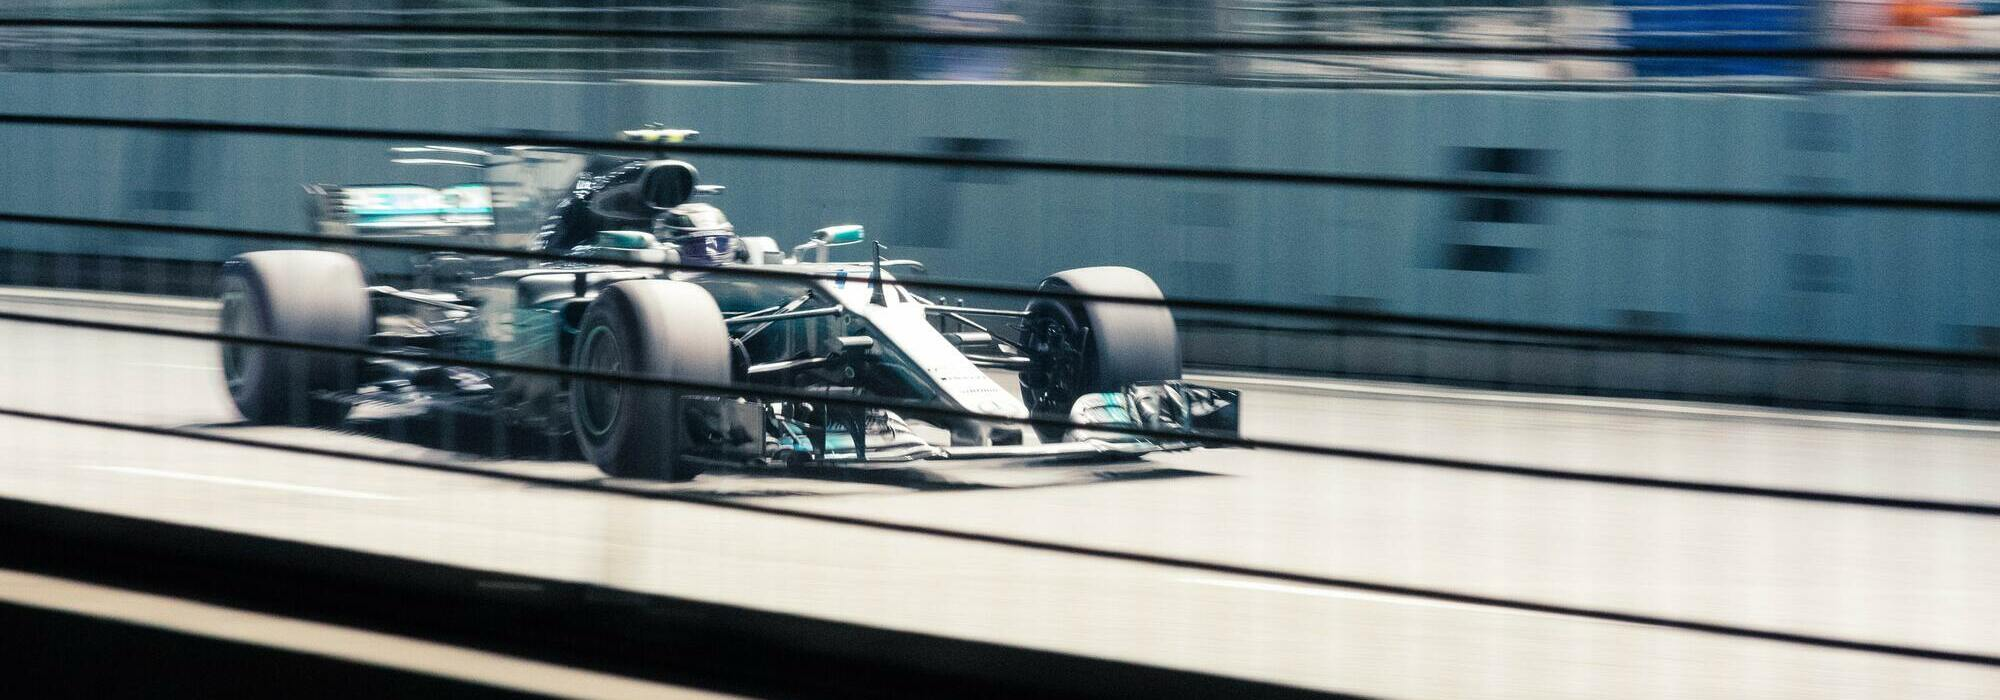 A Indianapolis 500 live event